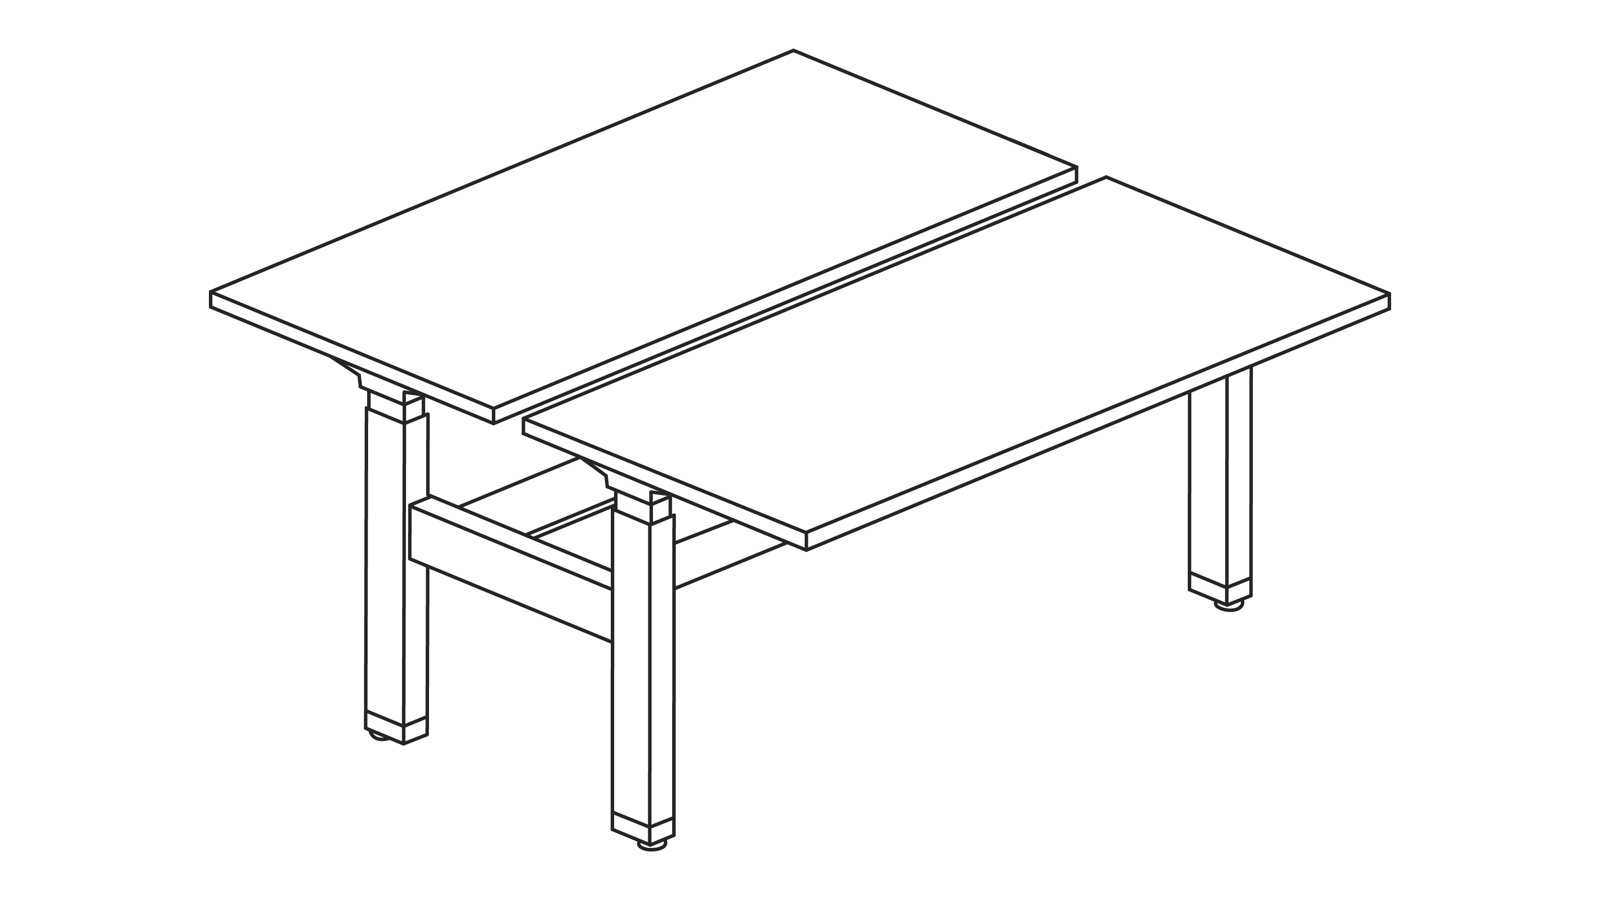 A line drawing of a Renew Link standing desk system in a back-to-back rectangular bench configuration.